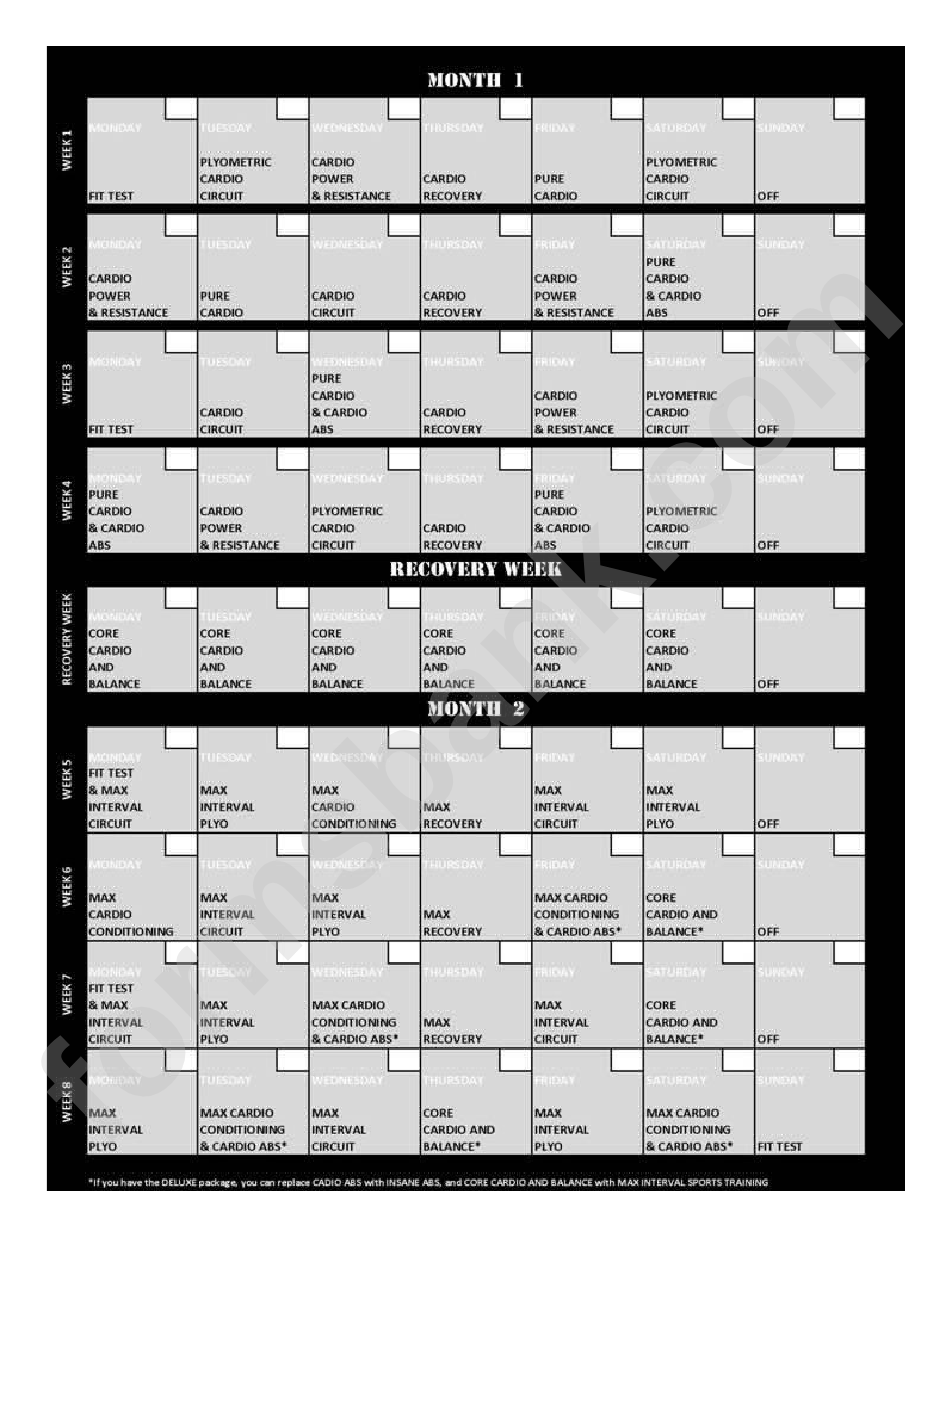 Insanity Workout Schedule printable